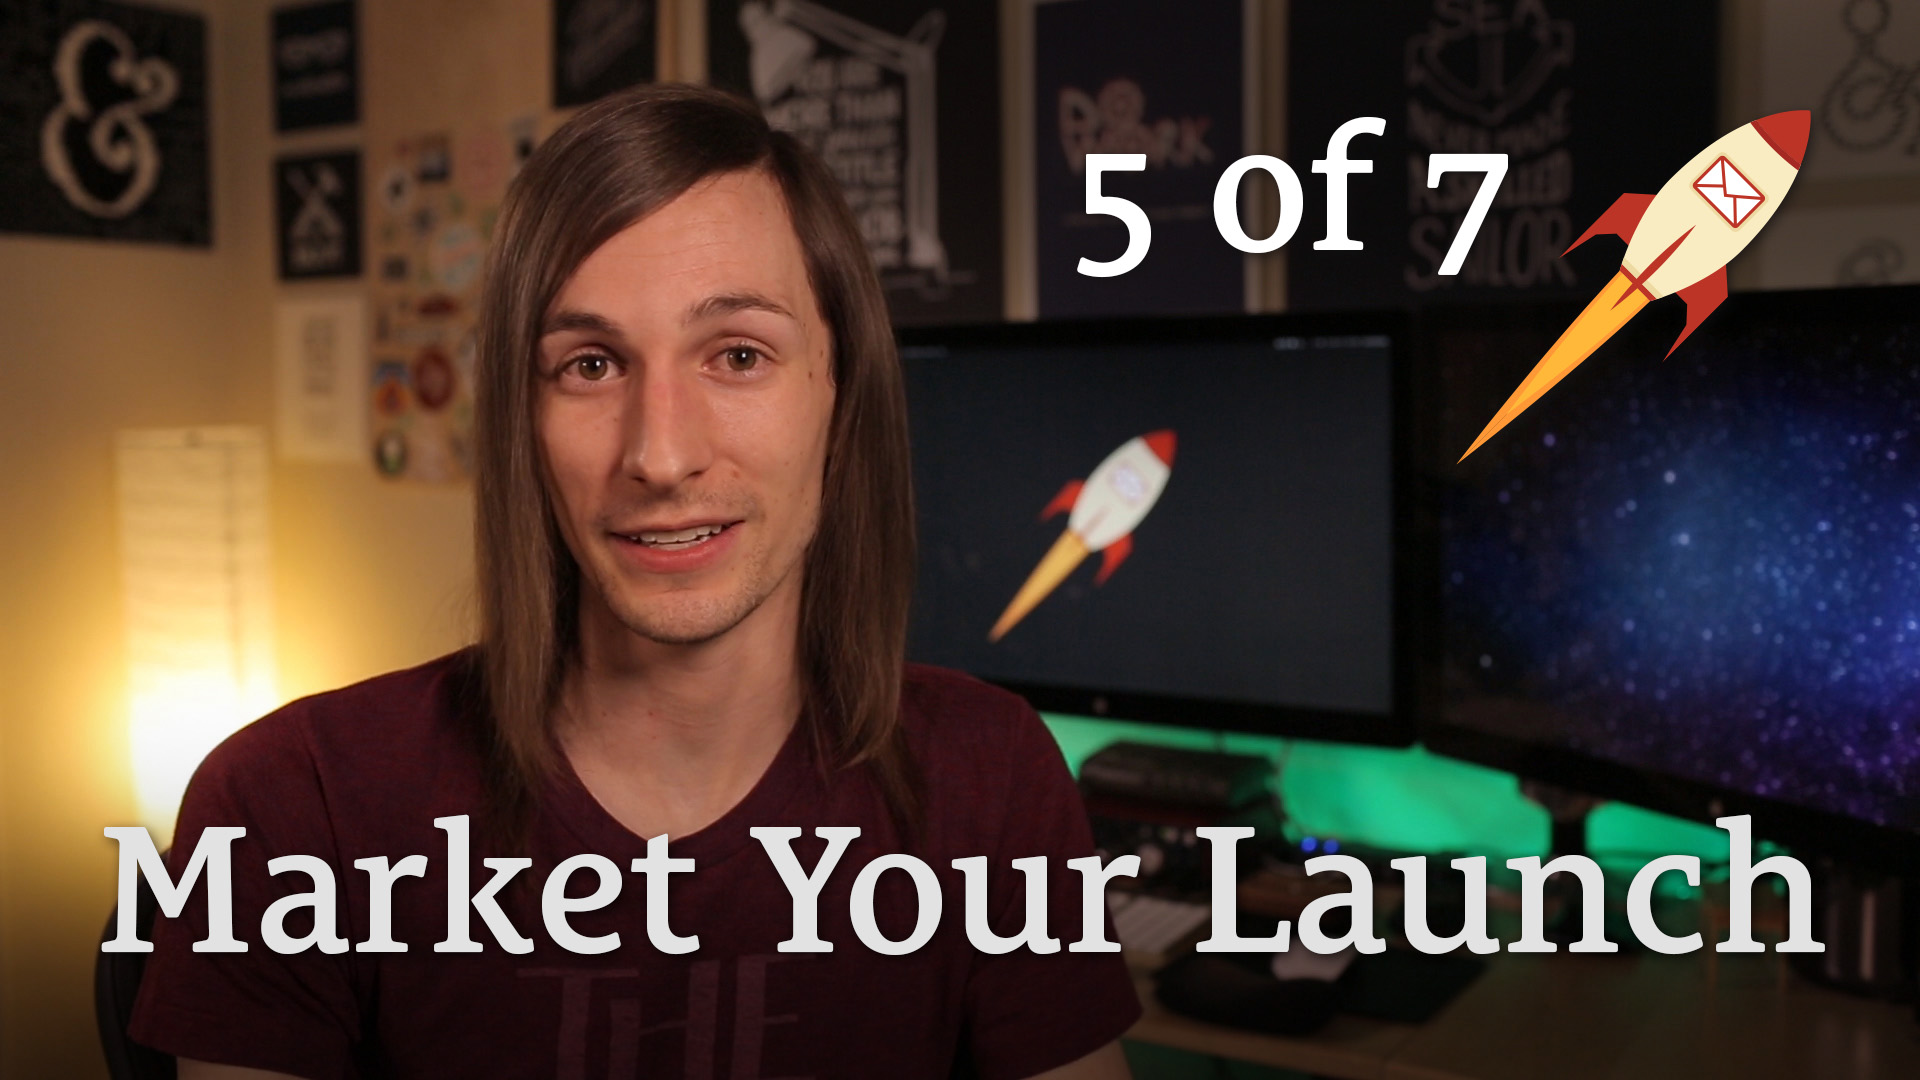 108: (Part 5 of 7): Market Your Launch With These Types of Content